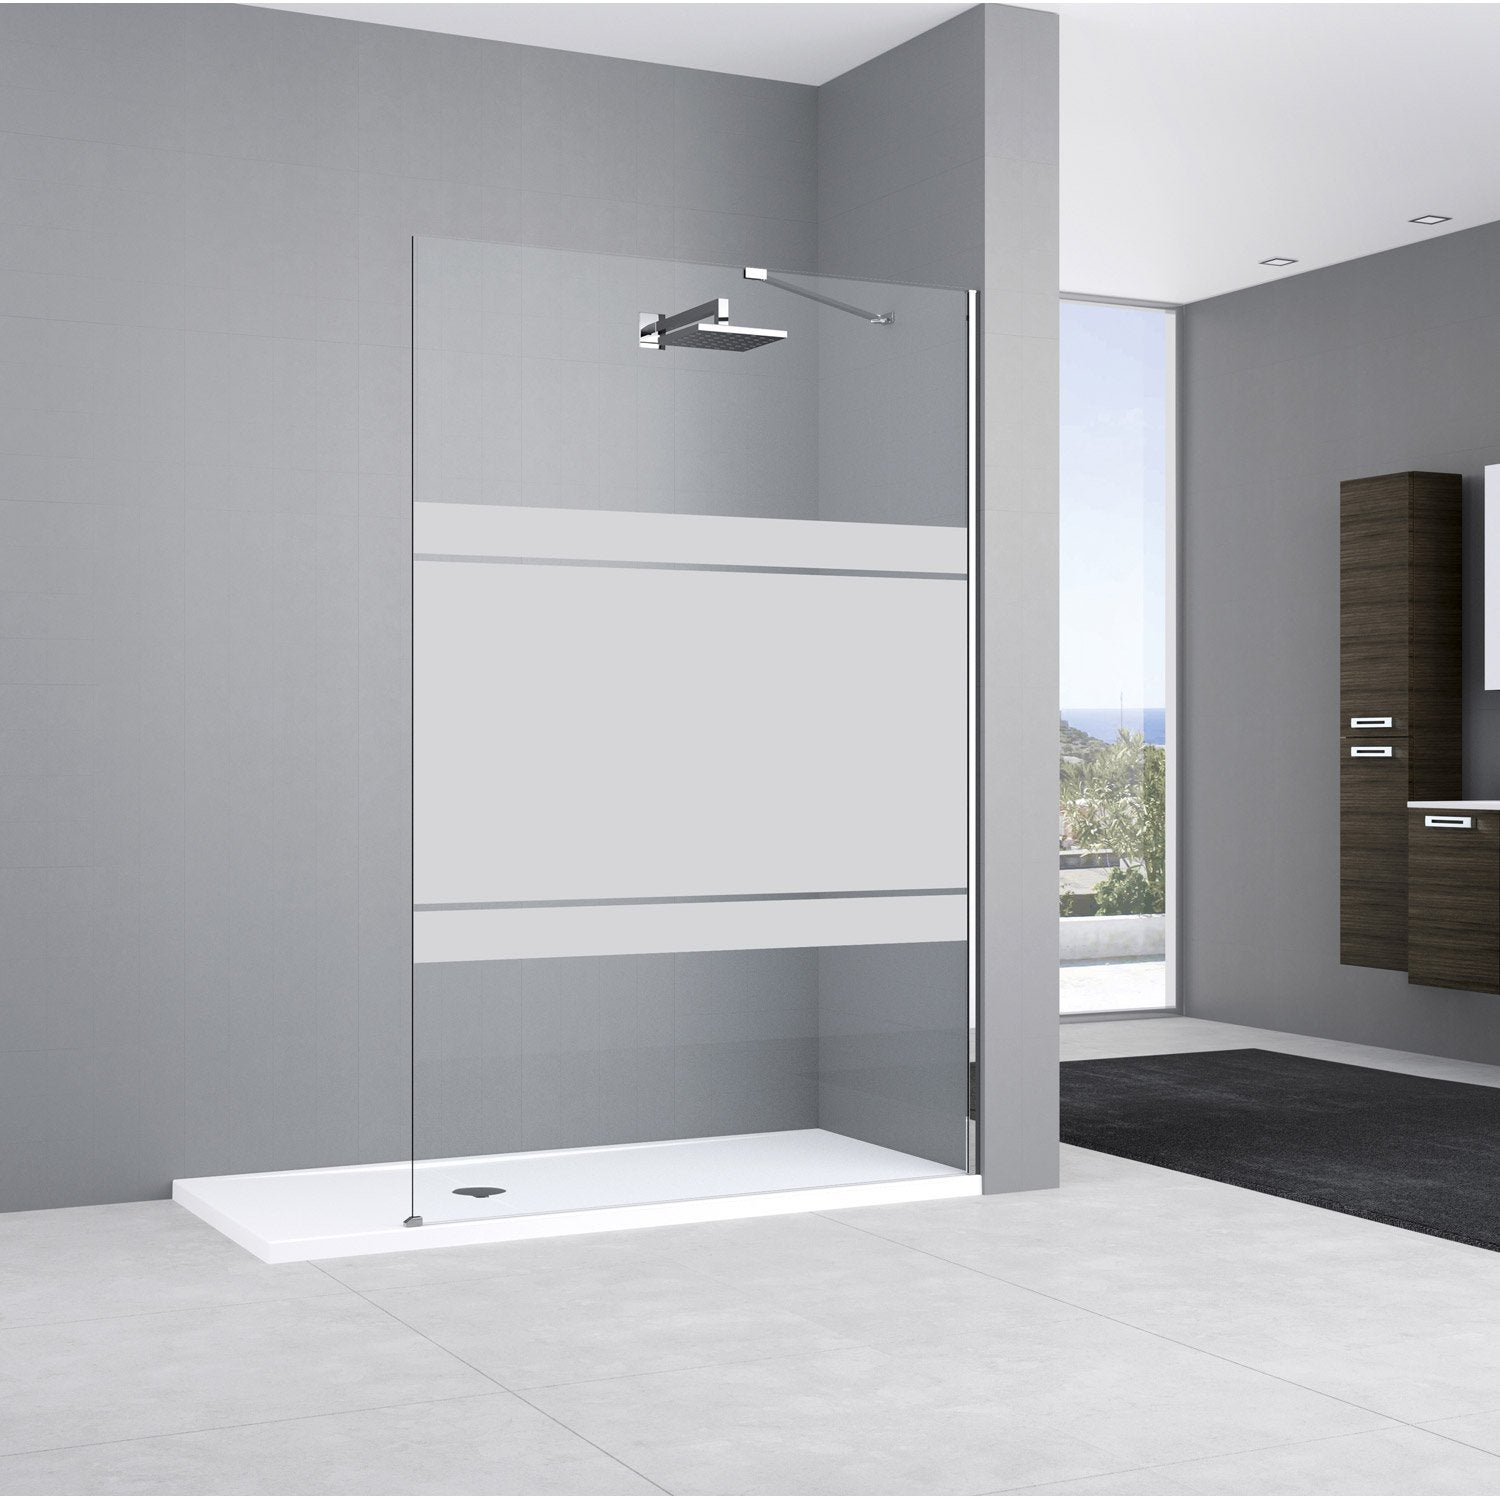 castorama paroi douche italienne fabulous superb paroi de douche castorama with castorama paroi. Black Bedroom Furniture Sets. Home Design Ideas